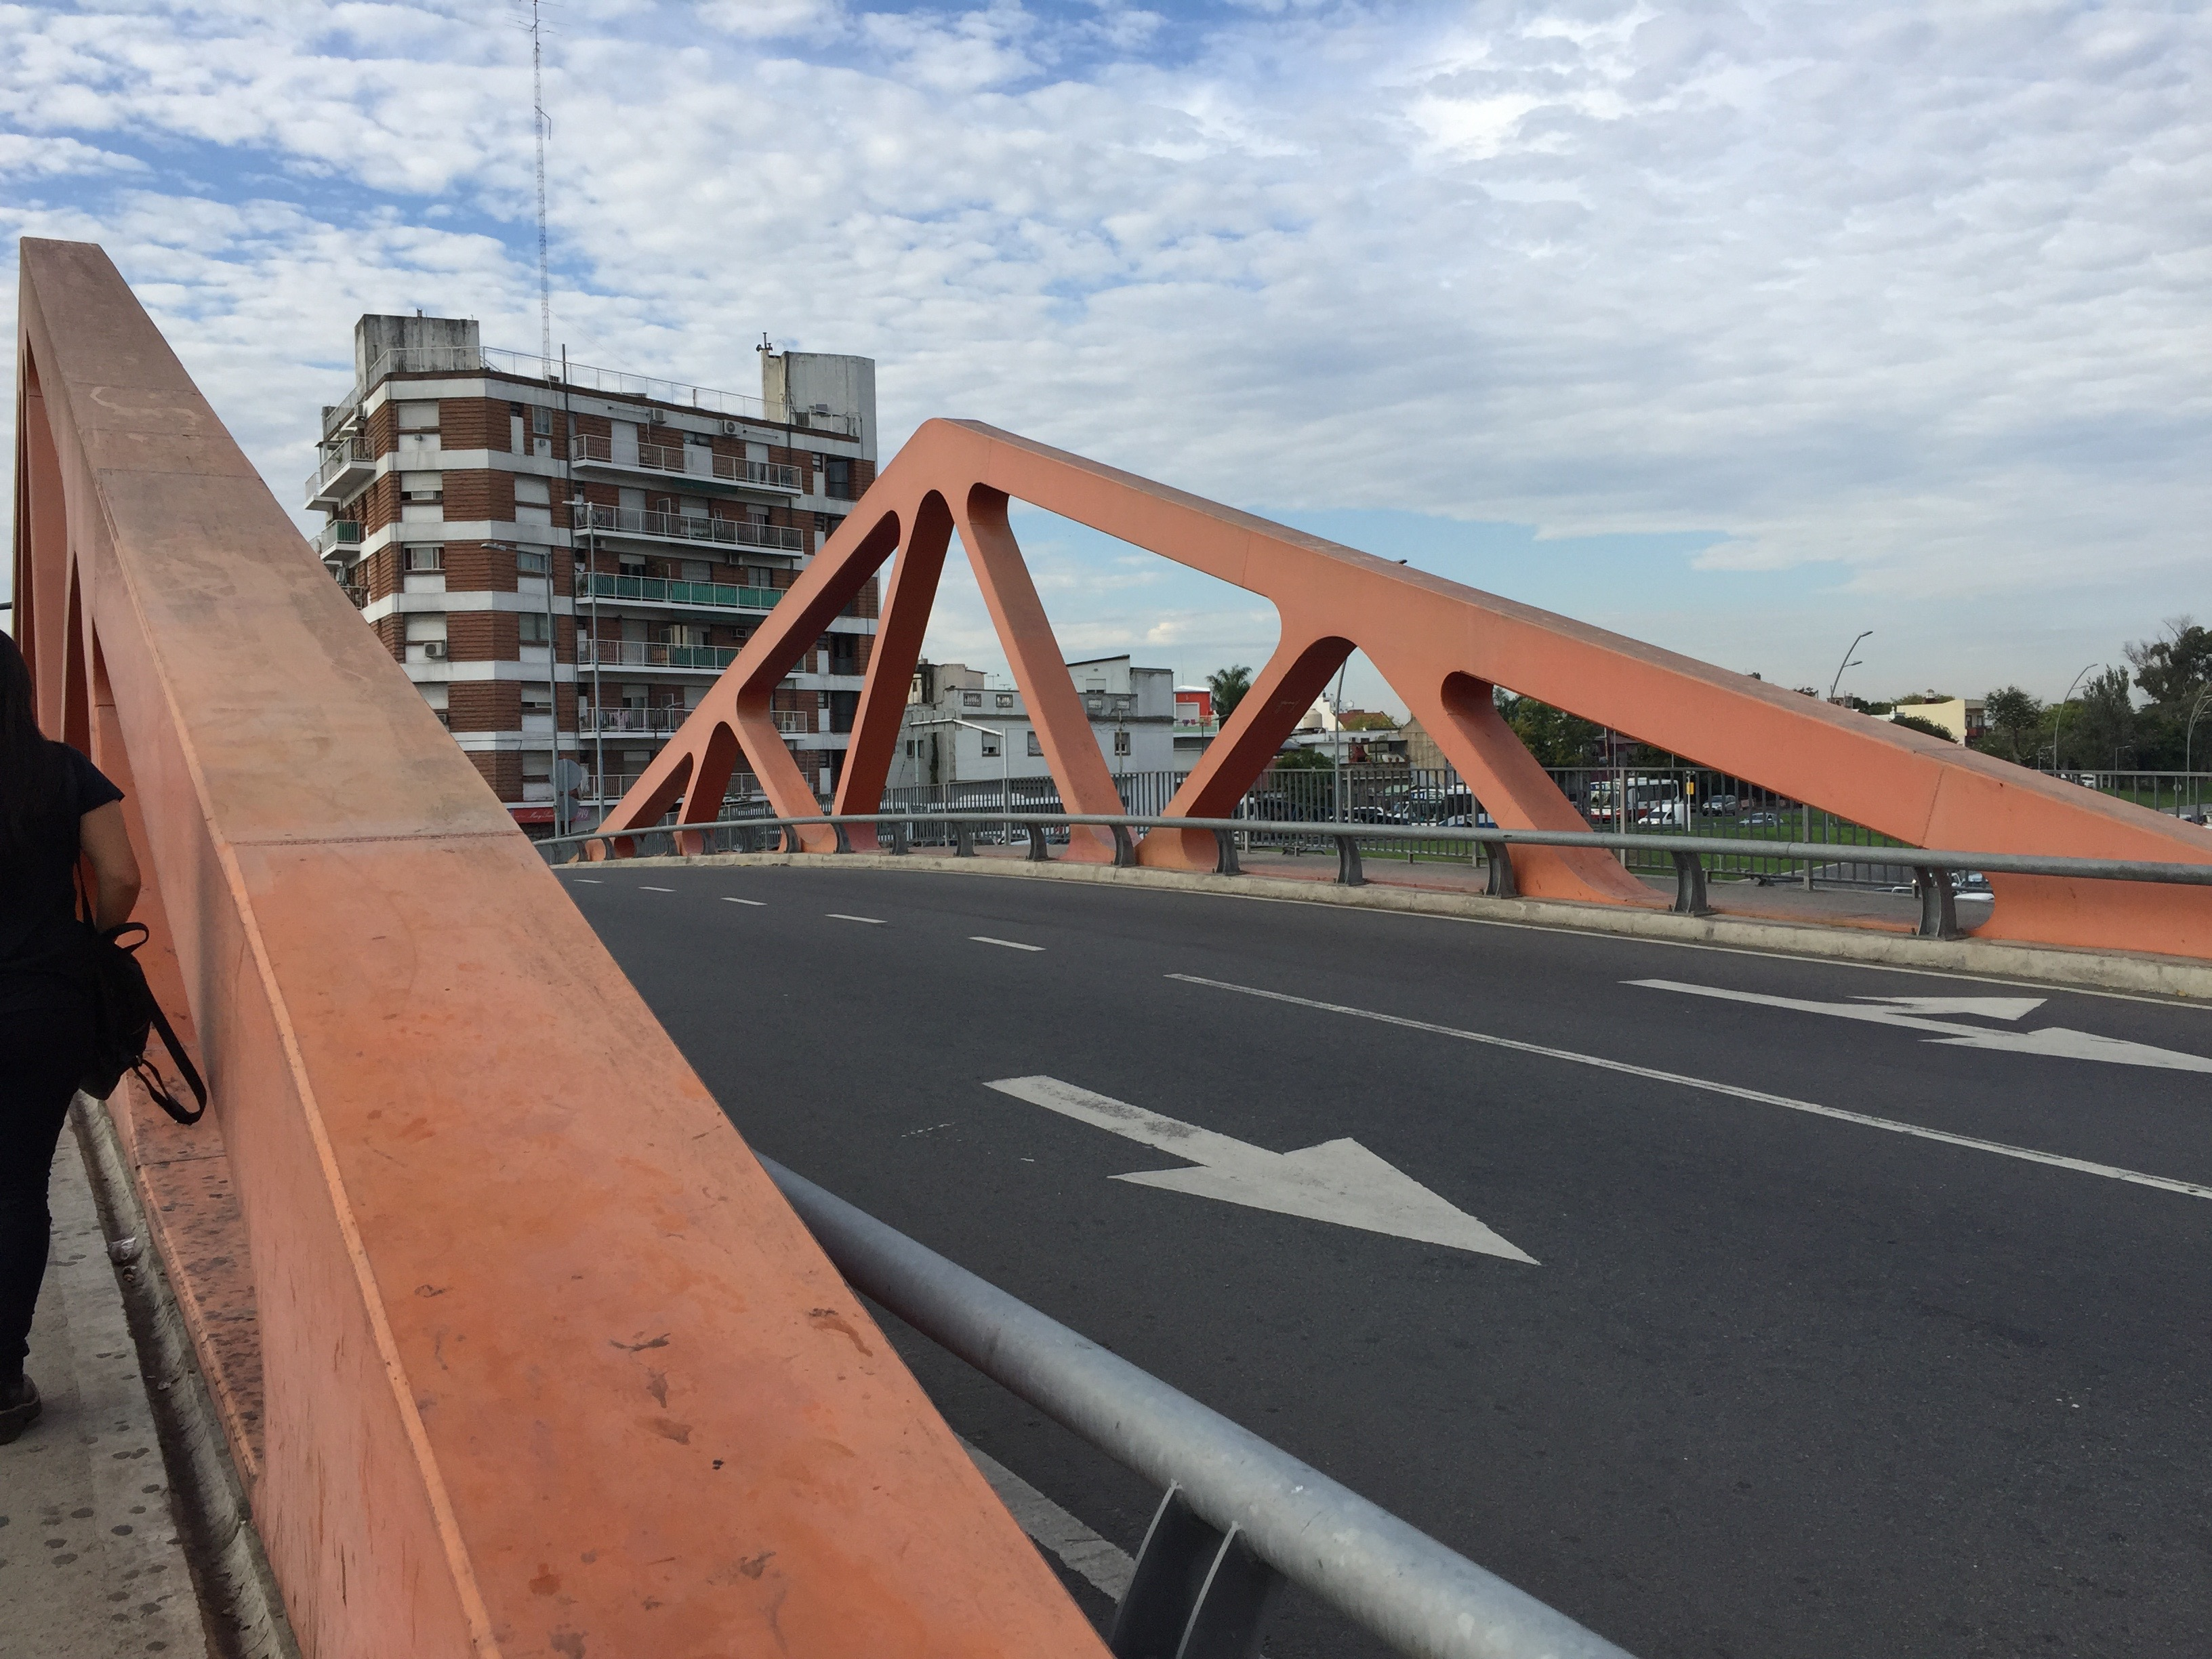 CAPAStudyAbroad_Buenos Aires_Spring2018_From Claire Shrader - This Bridge Indicates That I Need to Get Off the Bus Soon